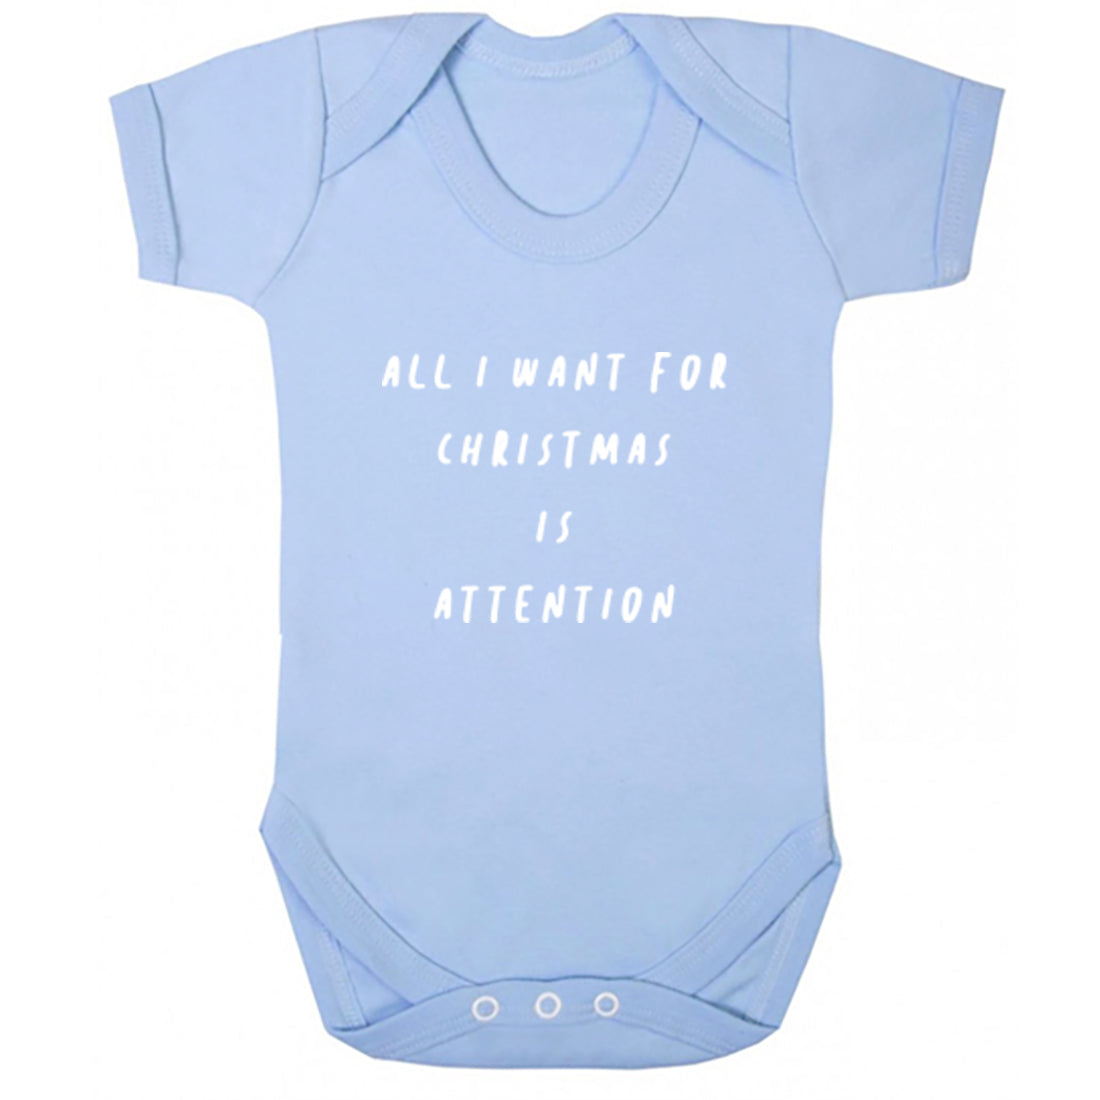 All I Want For Christmas Is Attention Baby Vest K2468